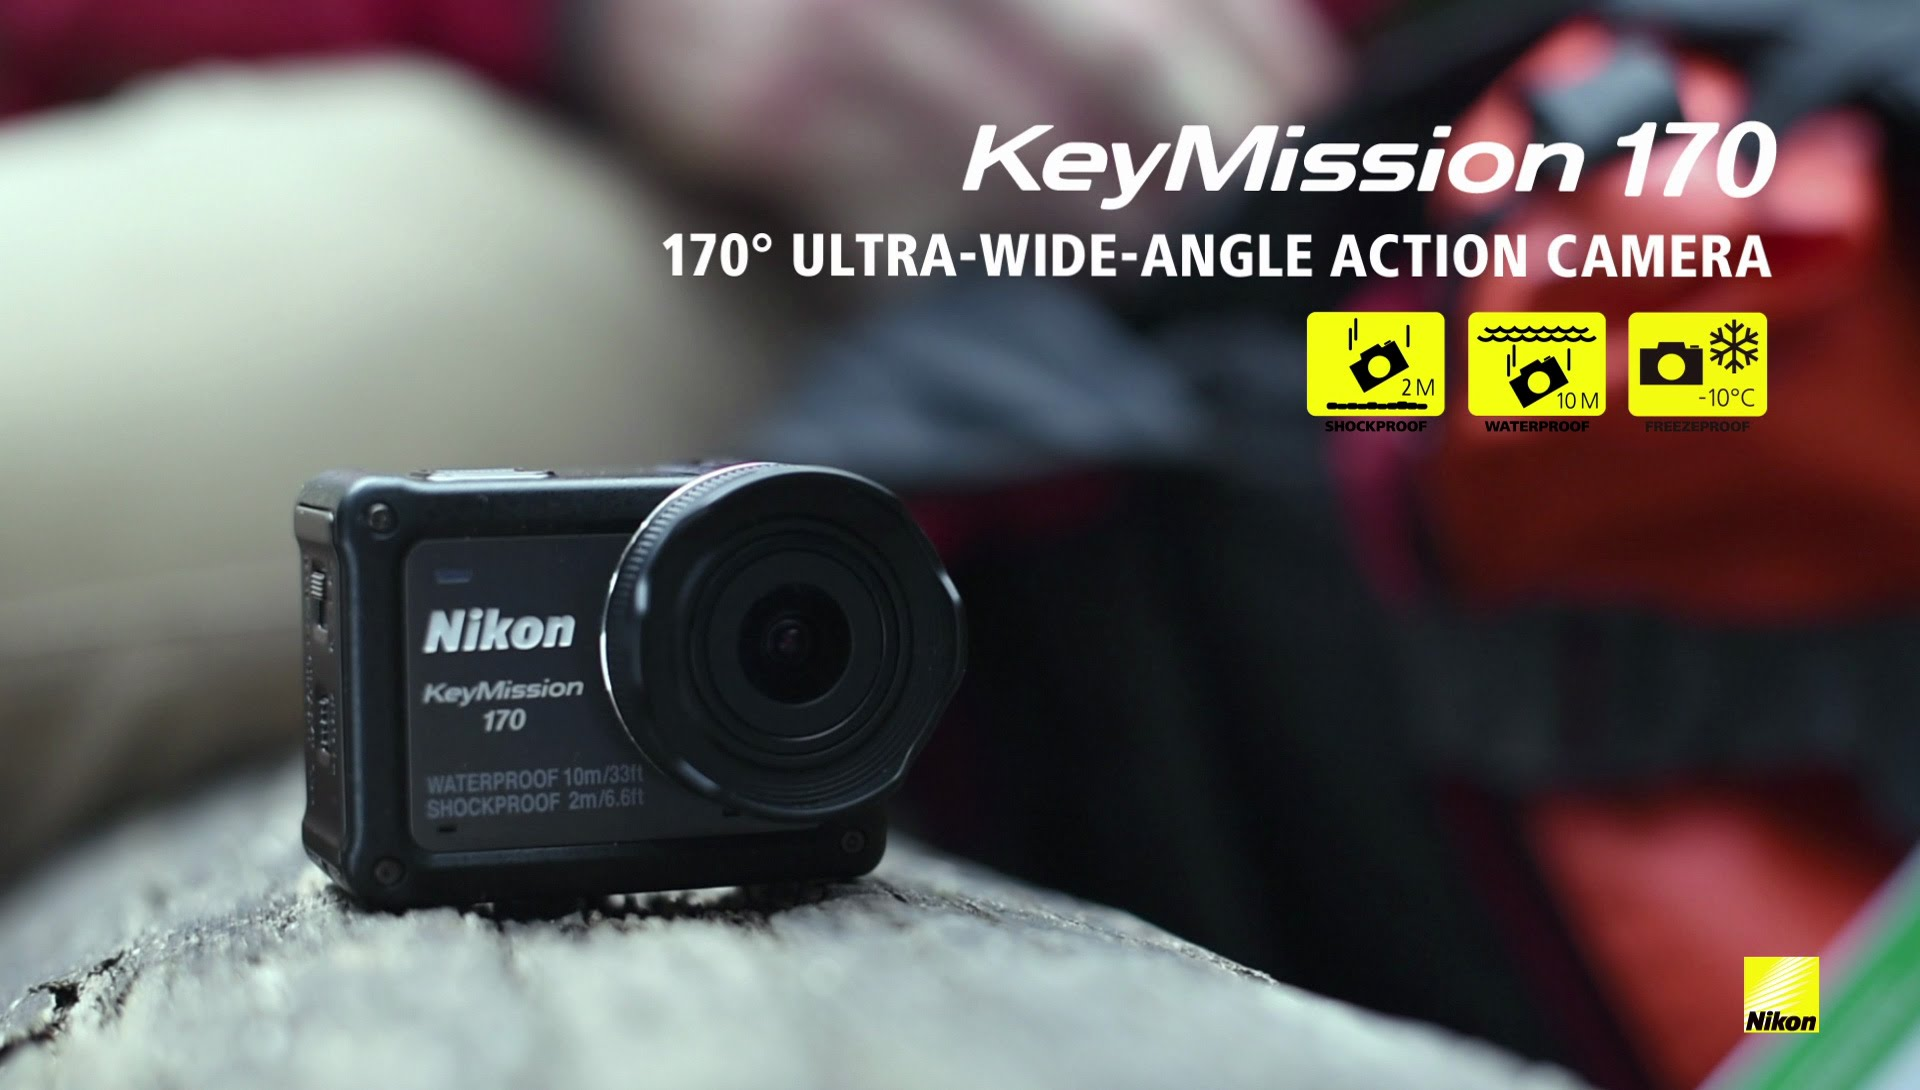 Nikon KeyMission 170: Product Tour